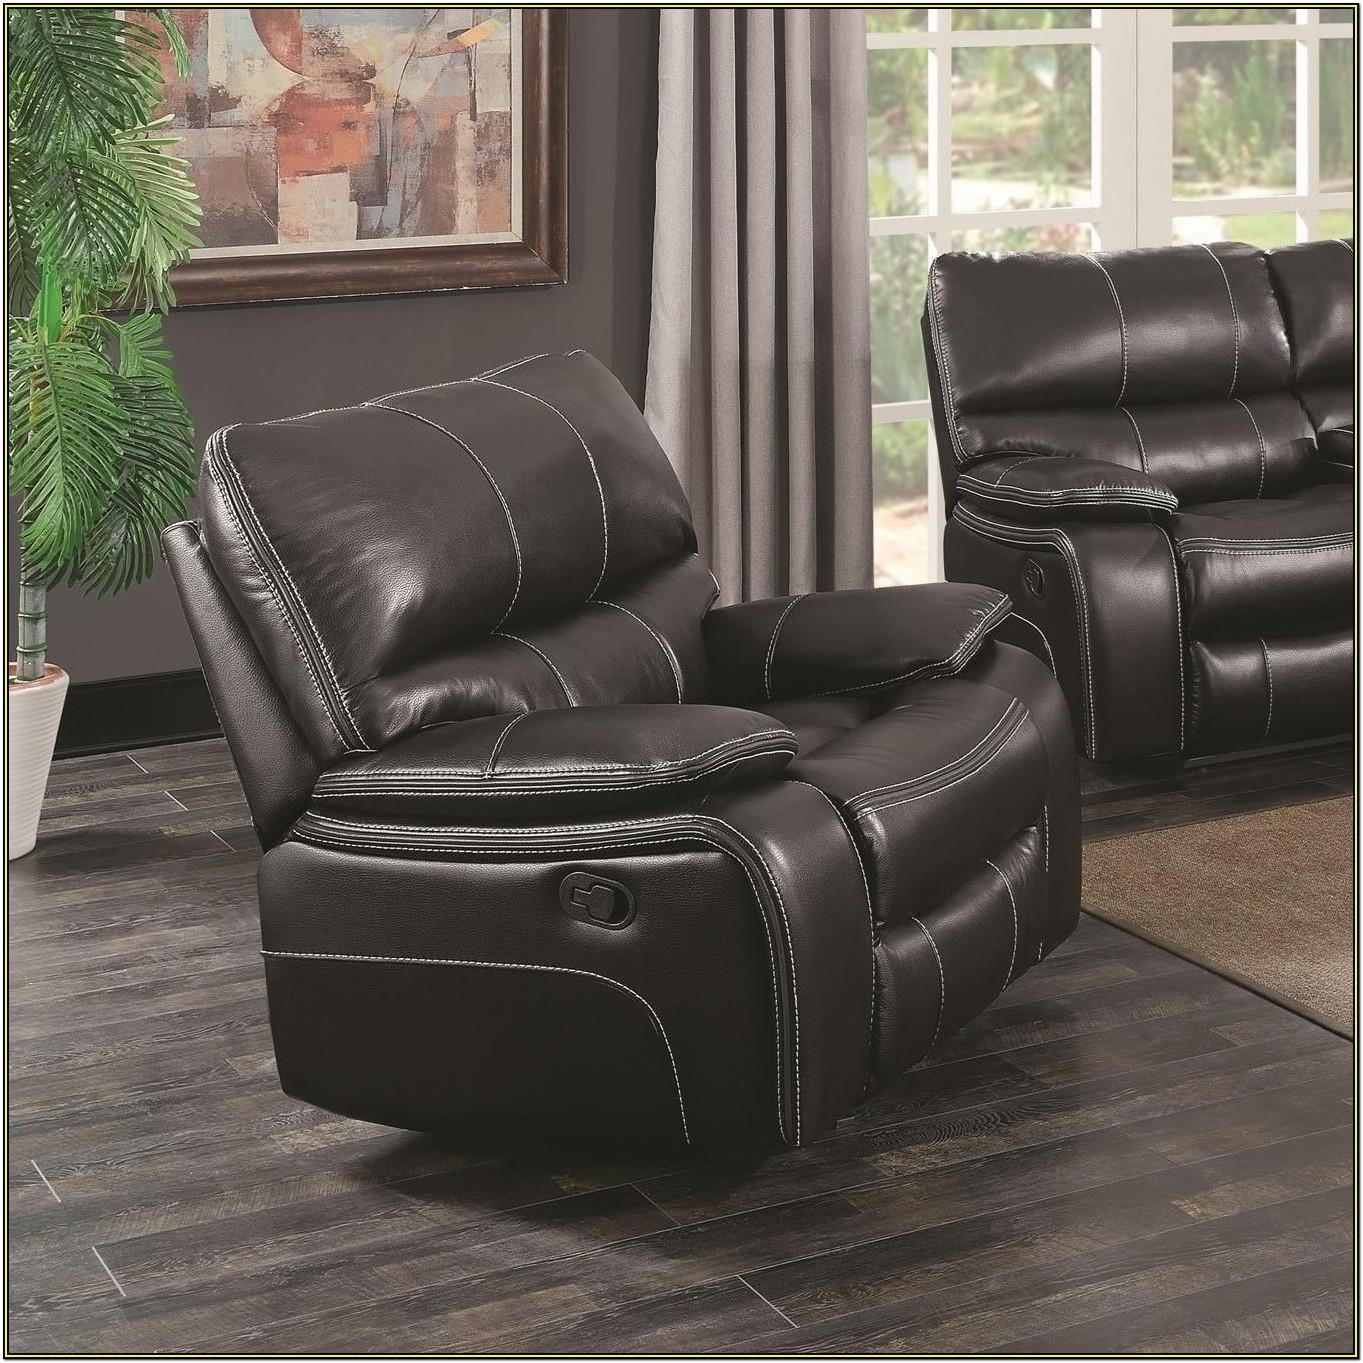 Best Living Room Chairs For Back Support